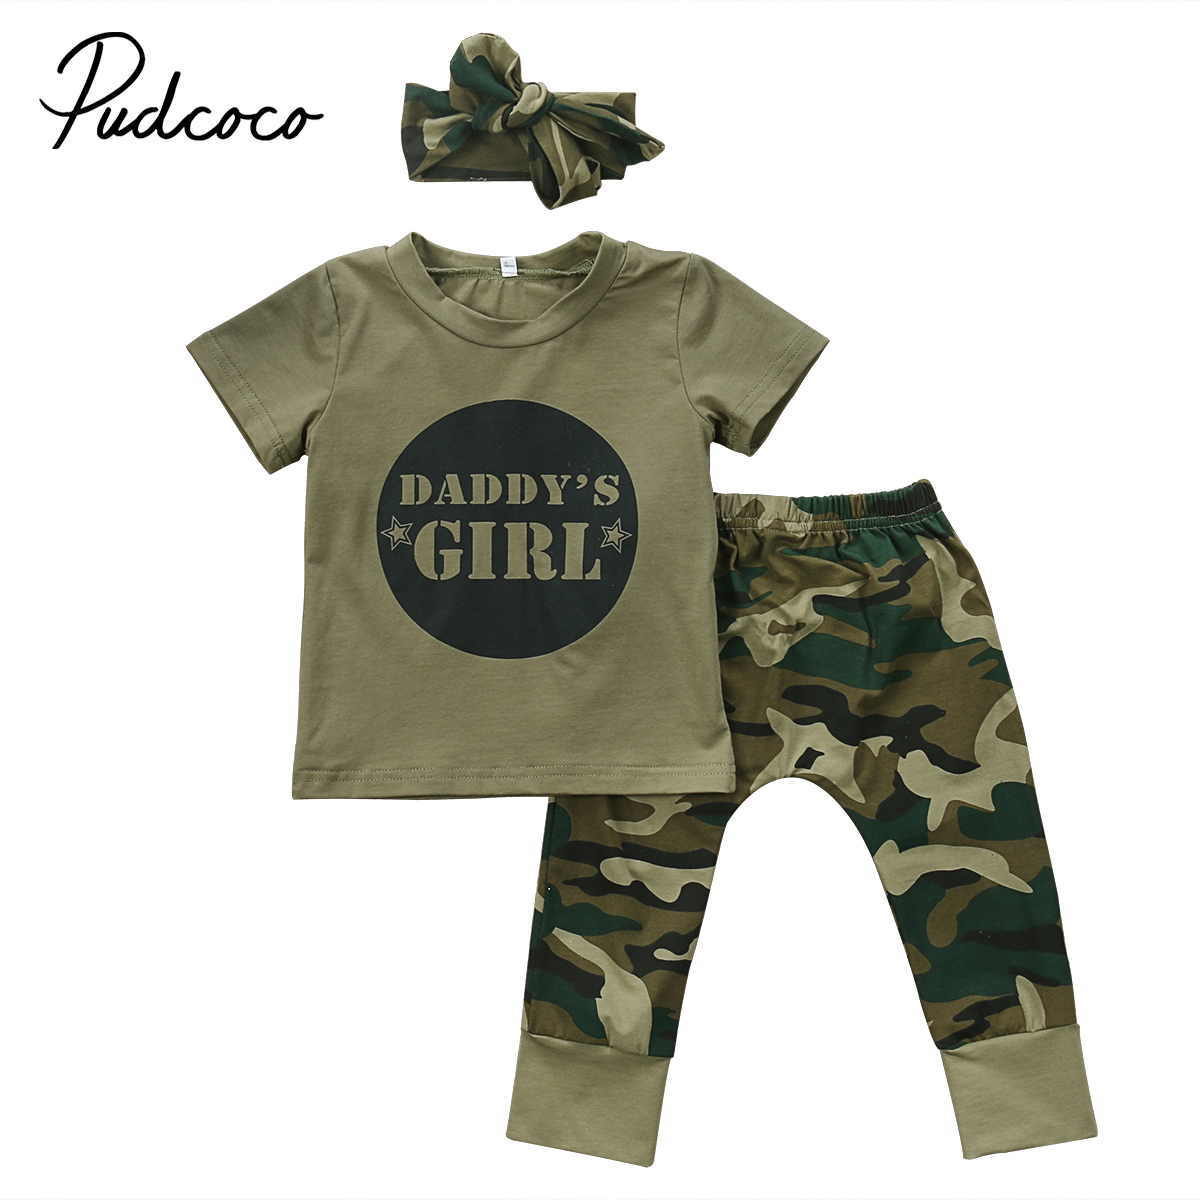 Summer Newborn Baby Boy Girls Camouflage T-shirt Tops+Pants Outfits Set Clothes Army Green Children Letters Print Clothing 0-24M 12v 100a 4s bms li ion li polymer lithium polymer limno balance charging board battery protection circuit board 14 4 14 8 16 8v